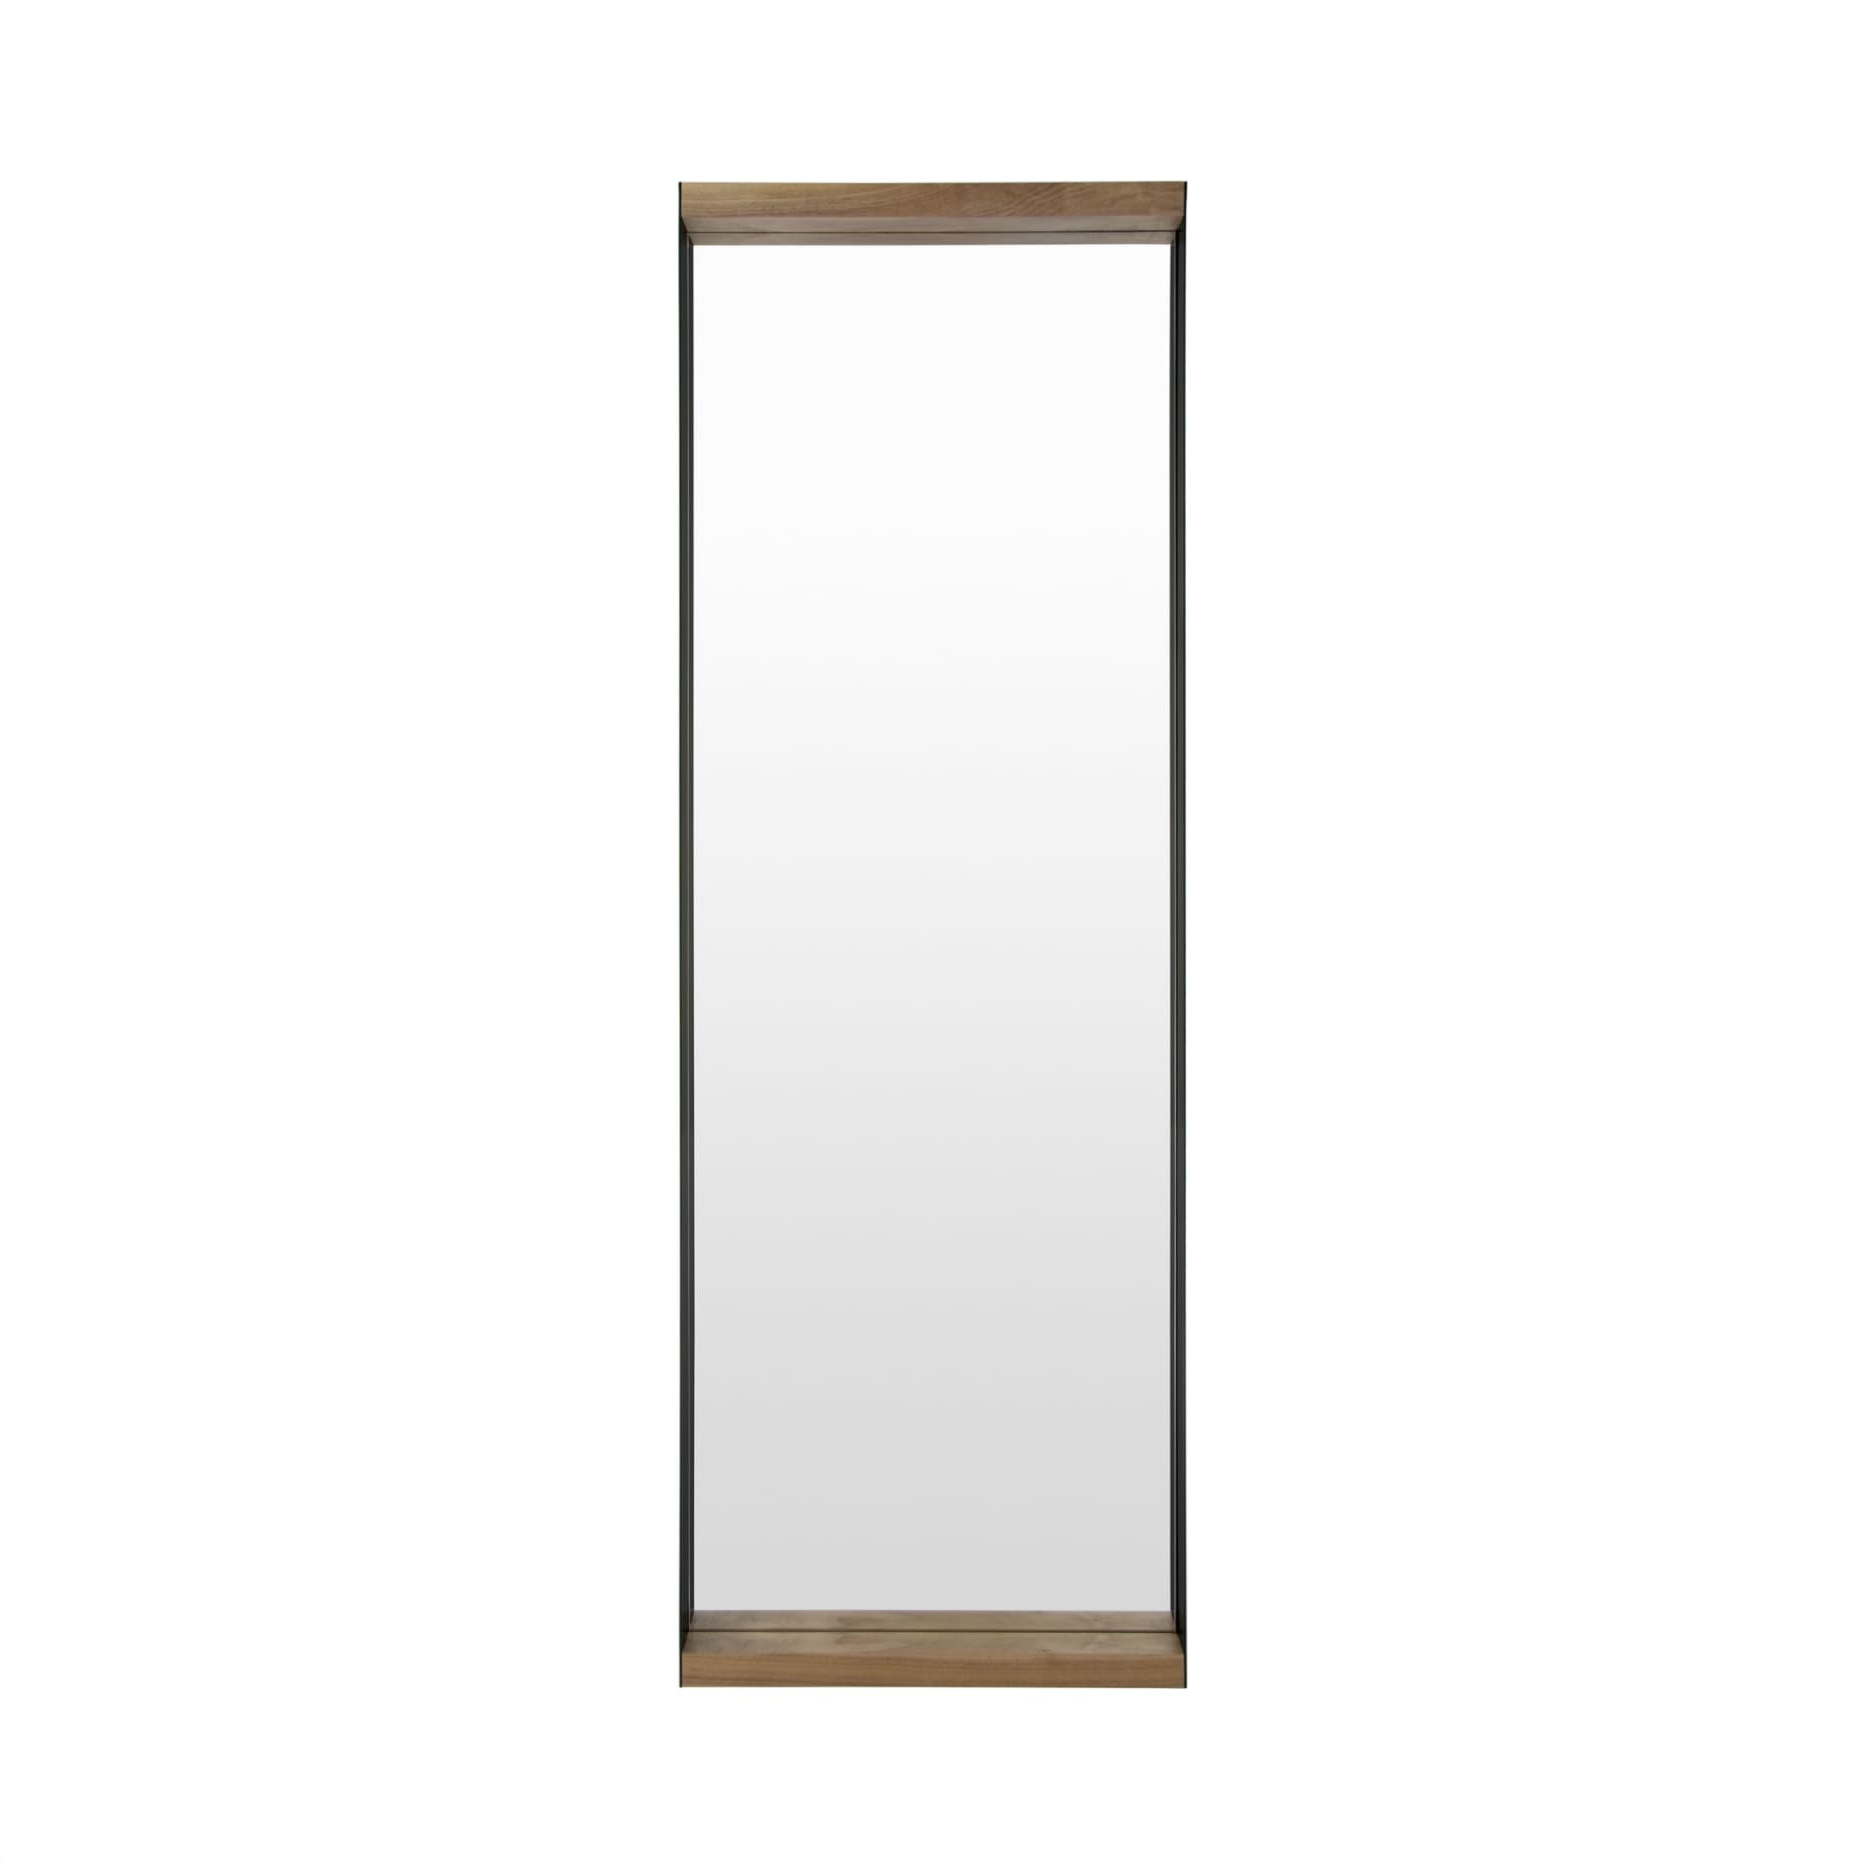 Large Rectangular Wall Mirrors Pertaining To Current Mirror Mirror – Large (Gallery 3 of 20)